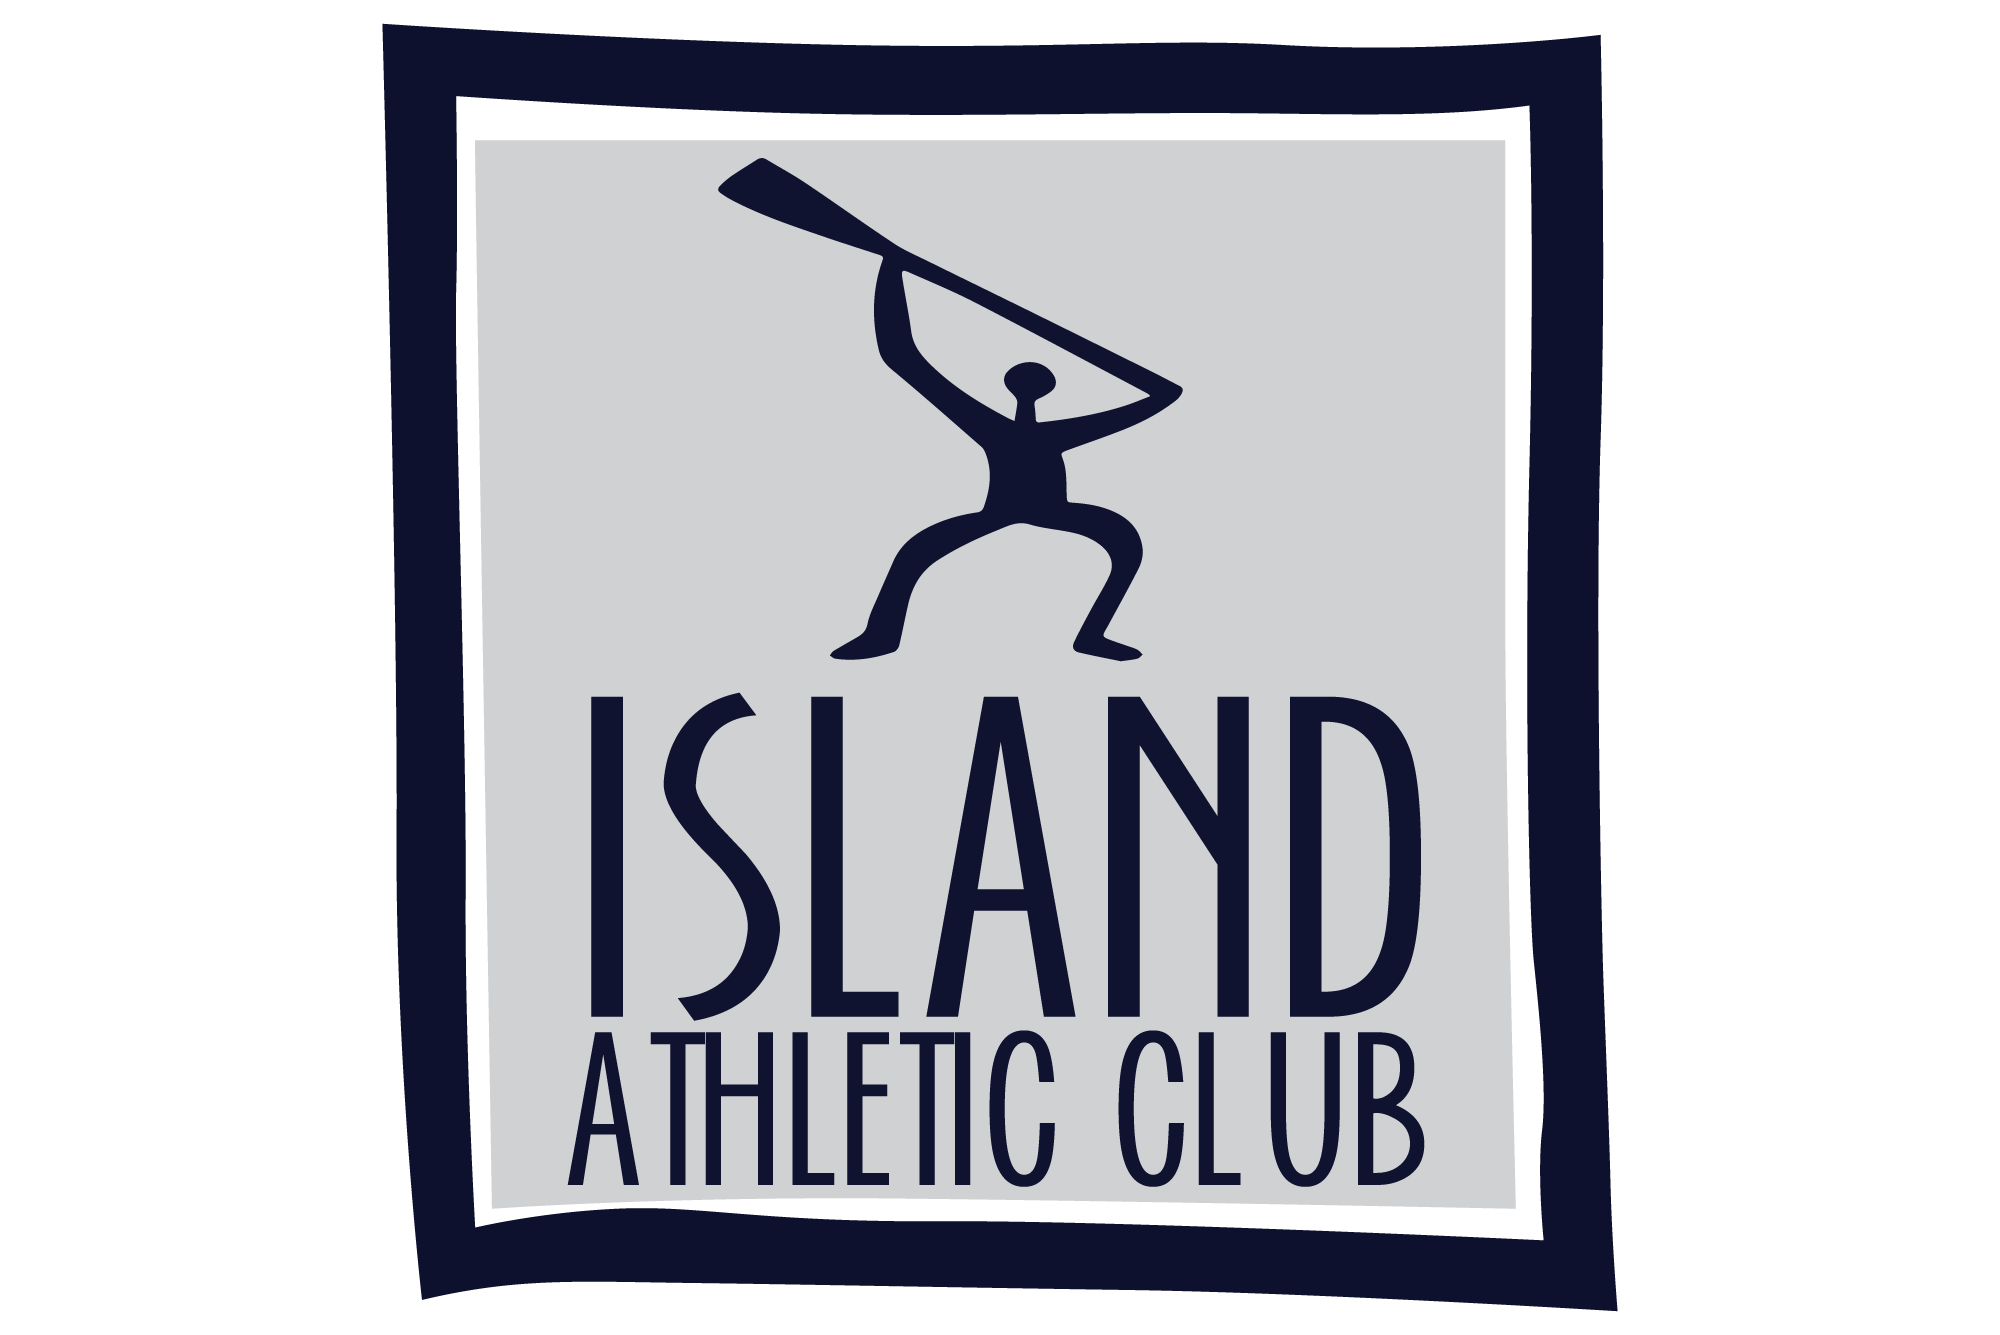 island athletic club logo